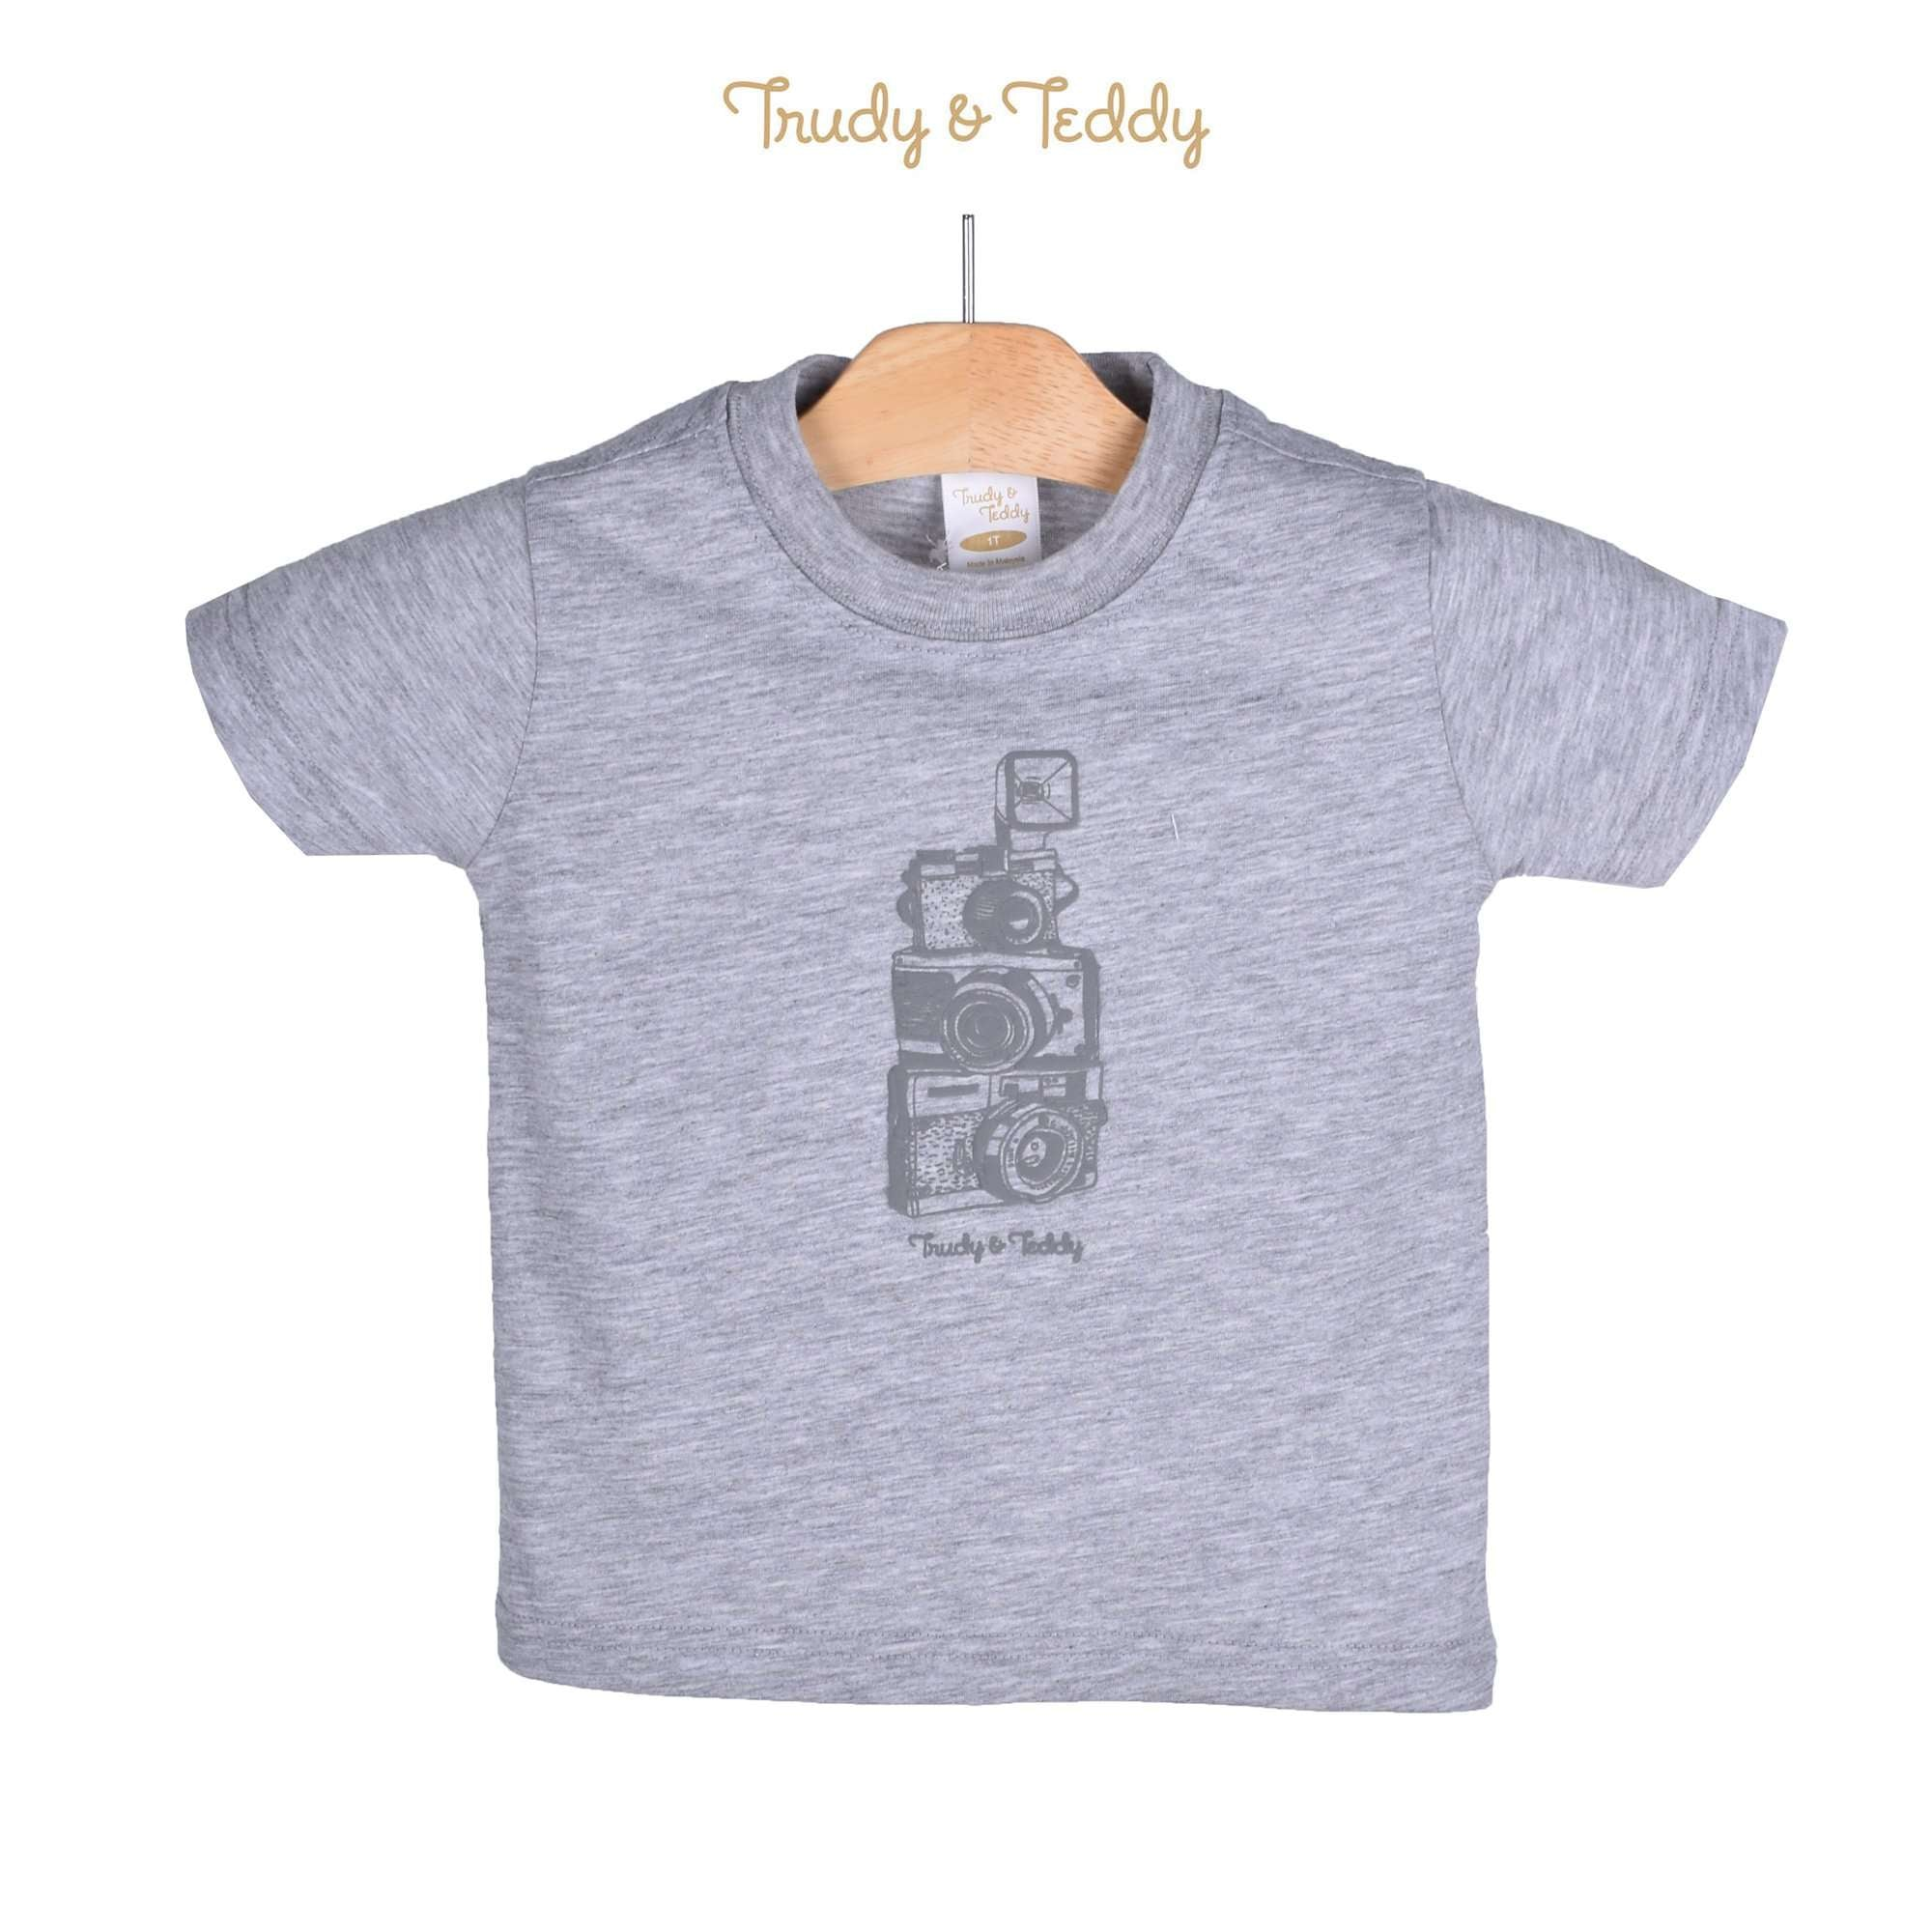 Trudy & Teddy Toddler Boy Short Sleeve Tee 825046-111 : Buy Trudy & Teddy online at CMG.MY